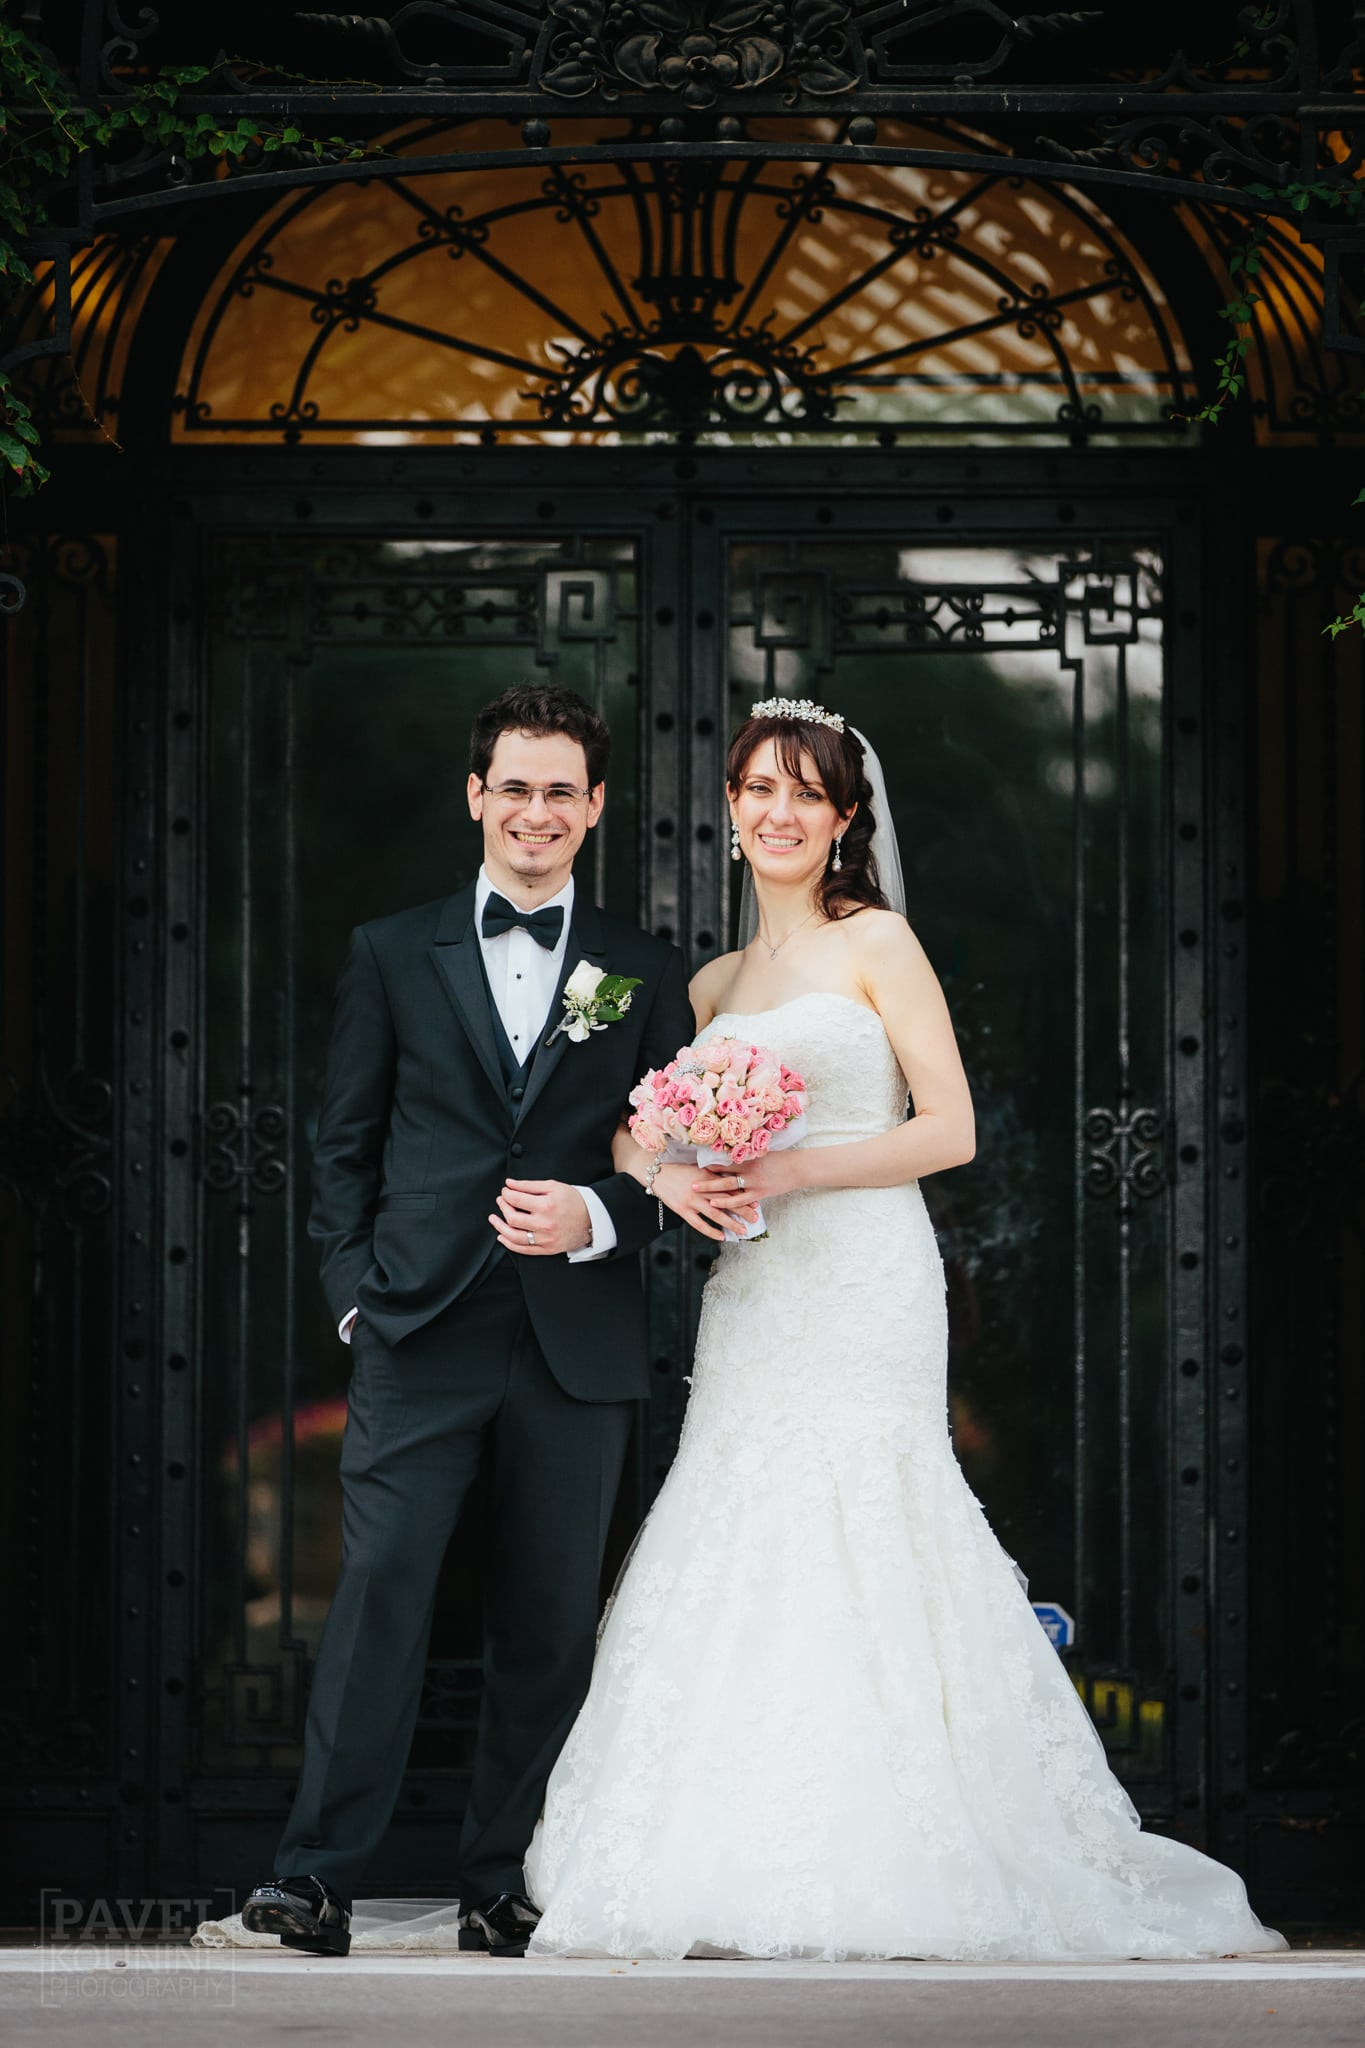 Romanian Wedding Photography in Toronto